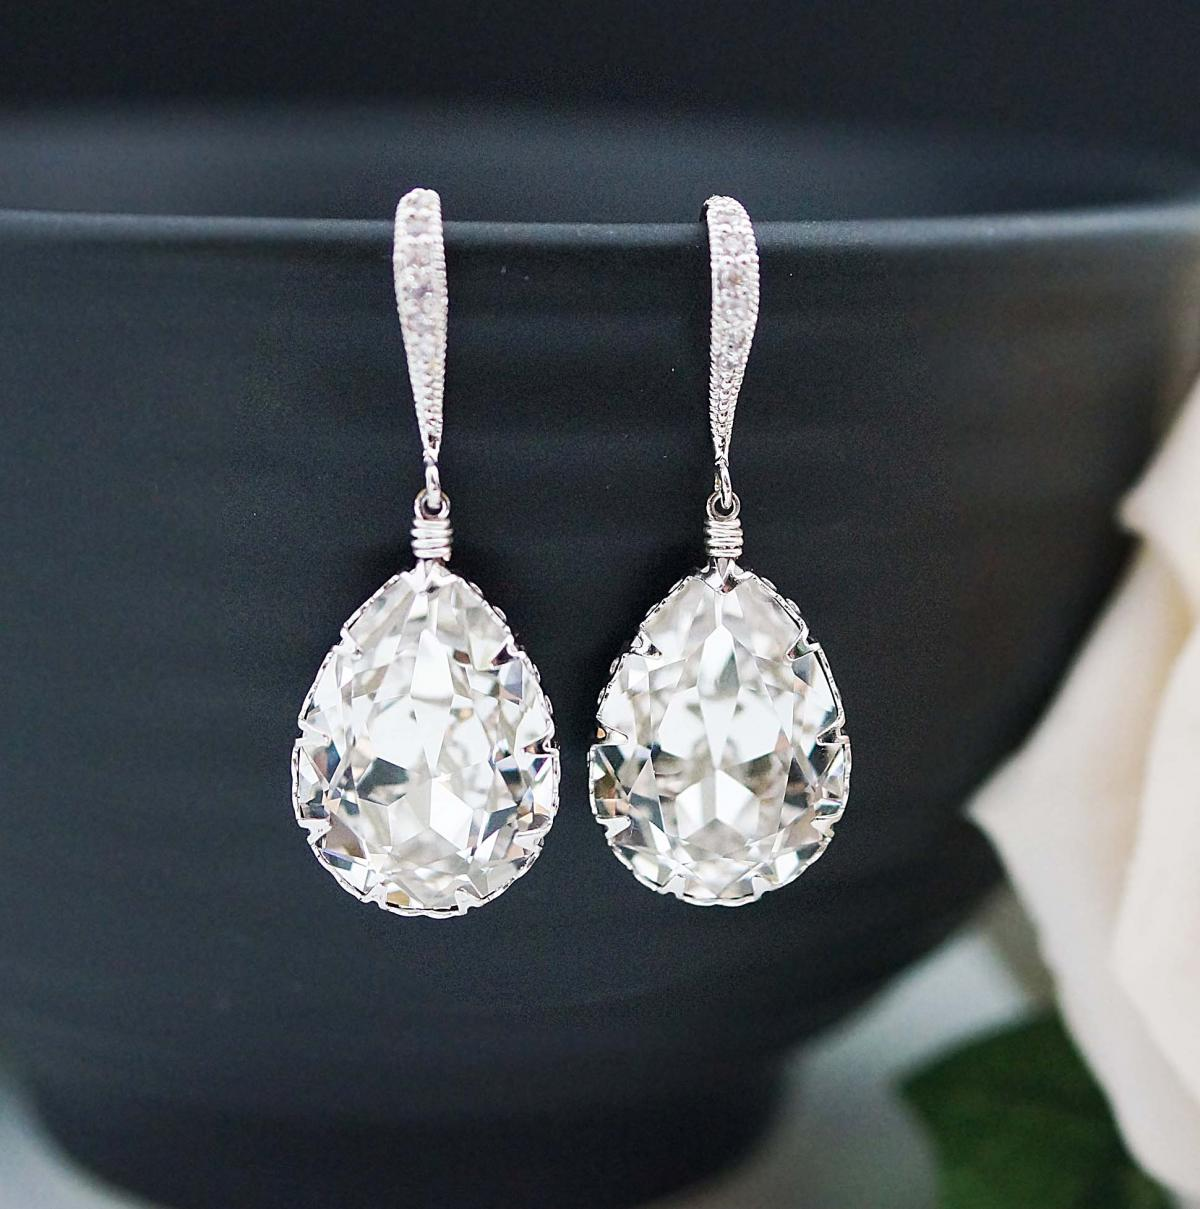 Wedding jewelry bridal earrings bridesmaid earrings dangle earrings wedding jewelry bridal earrings bridesmaid earrings dangle earrings clear white swarovski crystal tear drop earrings junglespirit Image collections